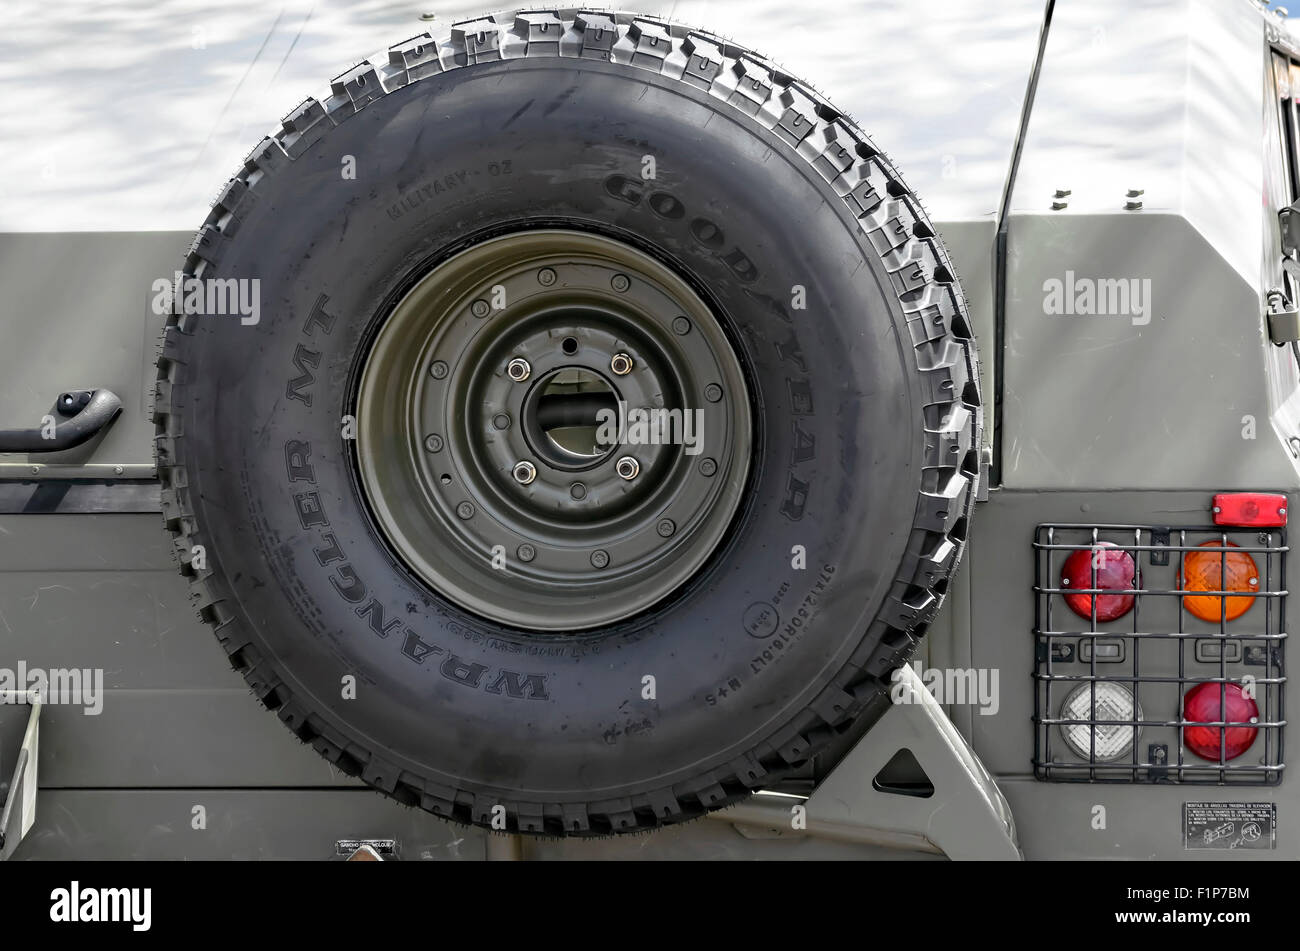 Spare tire of URO VAMTAC, -High Mobility Tactical Vehicle- of spanish army, during a show, in Alcala de Henares. - Stock Image